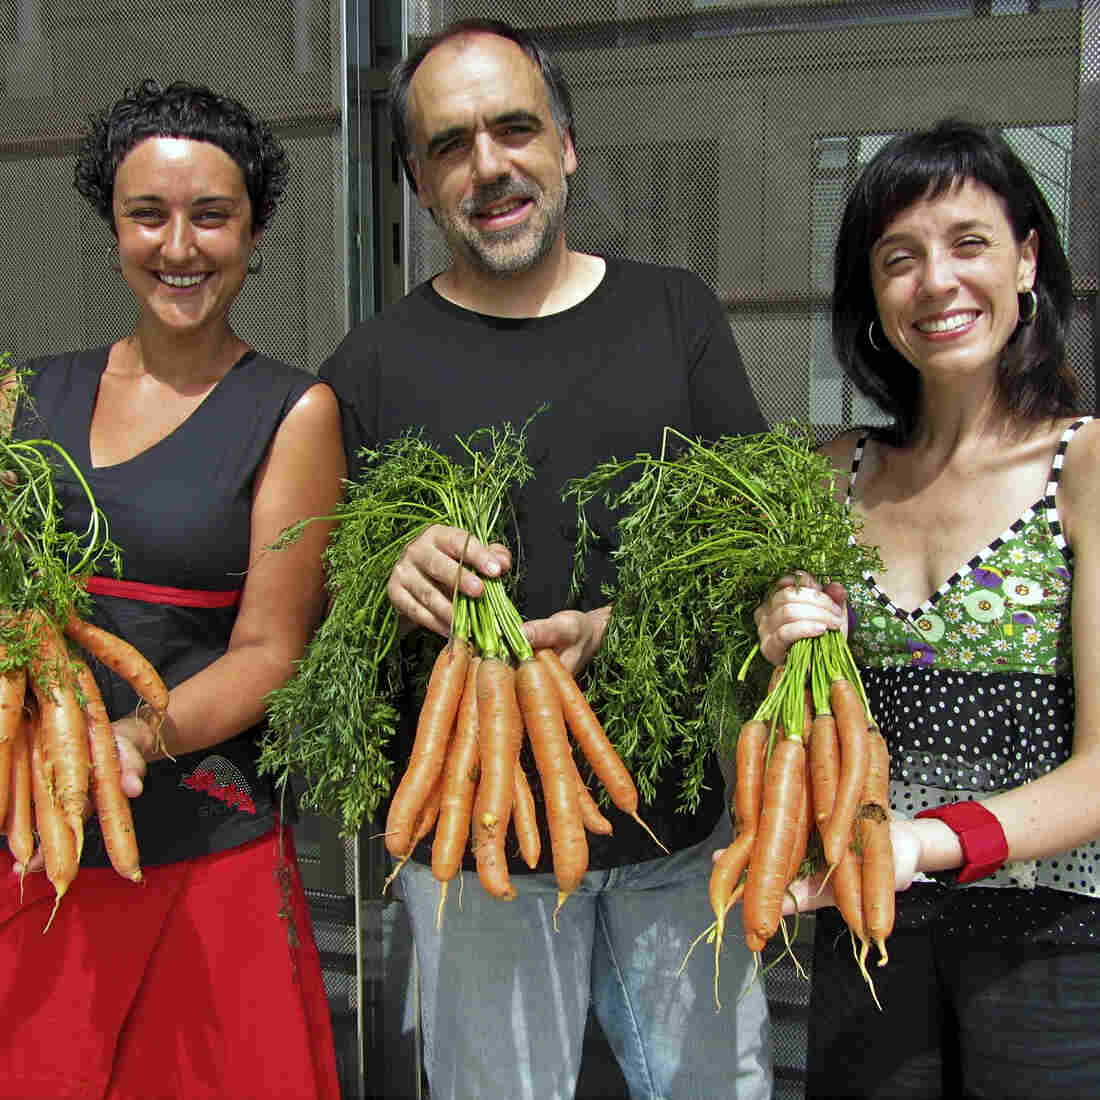 To Get Around Tax Hike, Spanish Theater Sells Carrots, Not Tickets